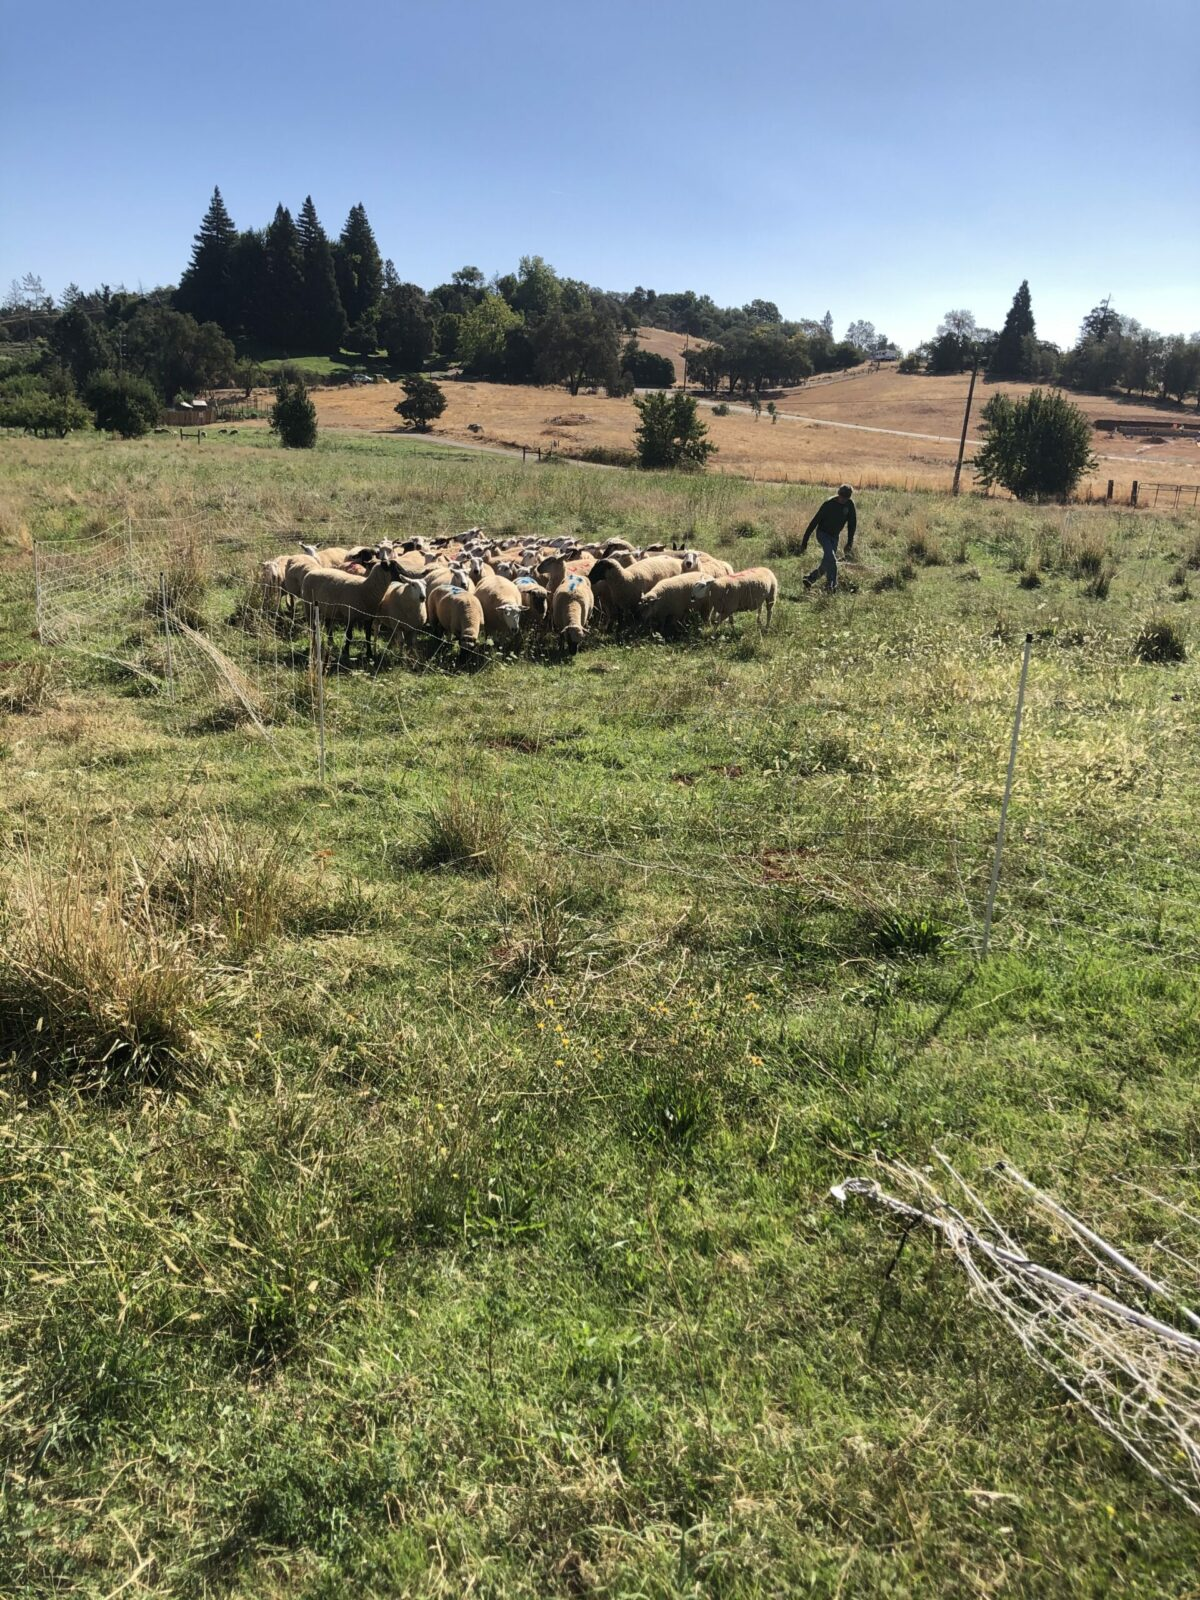 sheep grazing in field